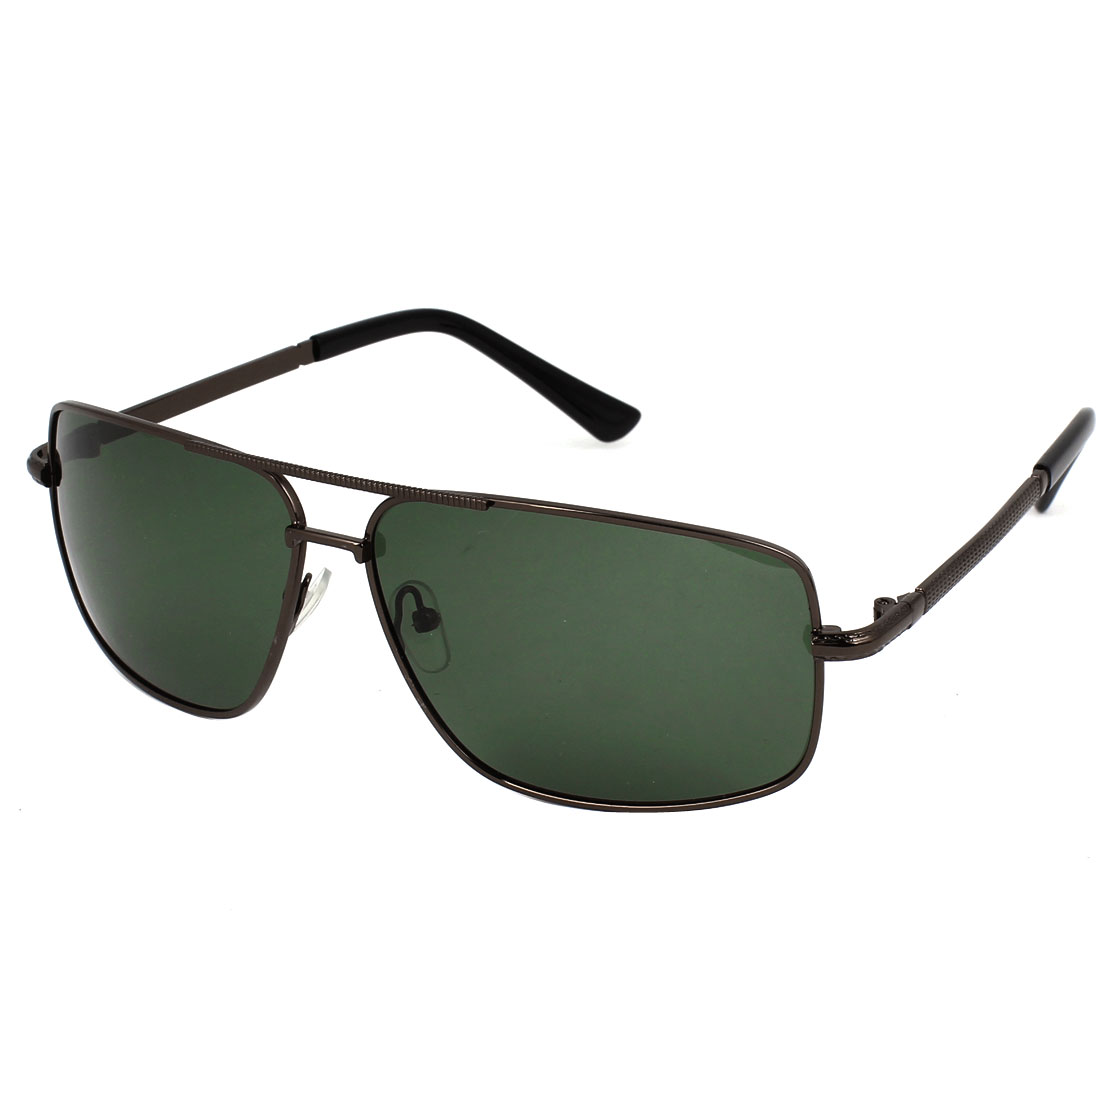 Man Double Bridge Full Frame Rectangular Lens Dark Green Polarized Sunglasses